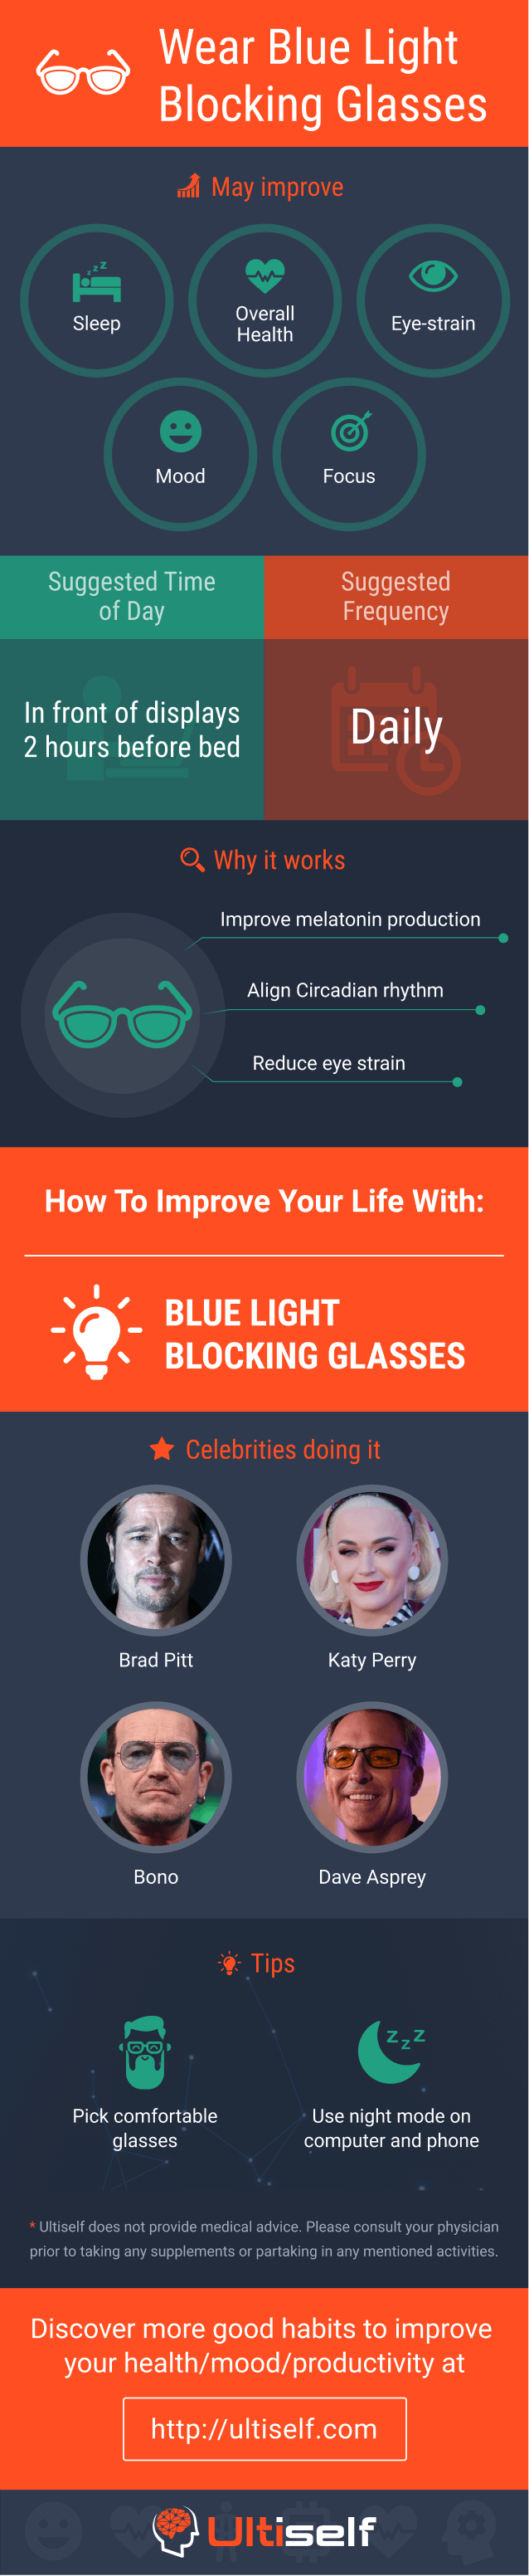 Wear Blue Light Blocking Glasses infographic